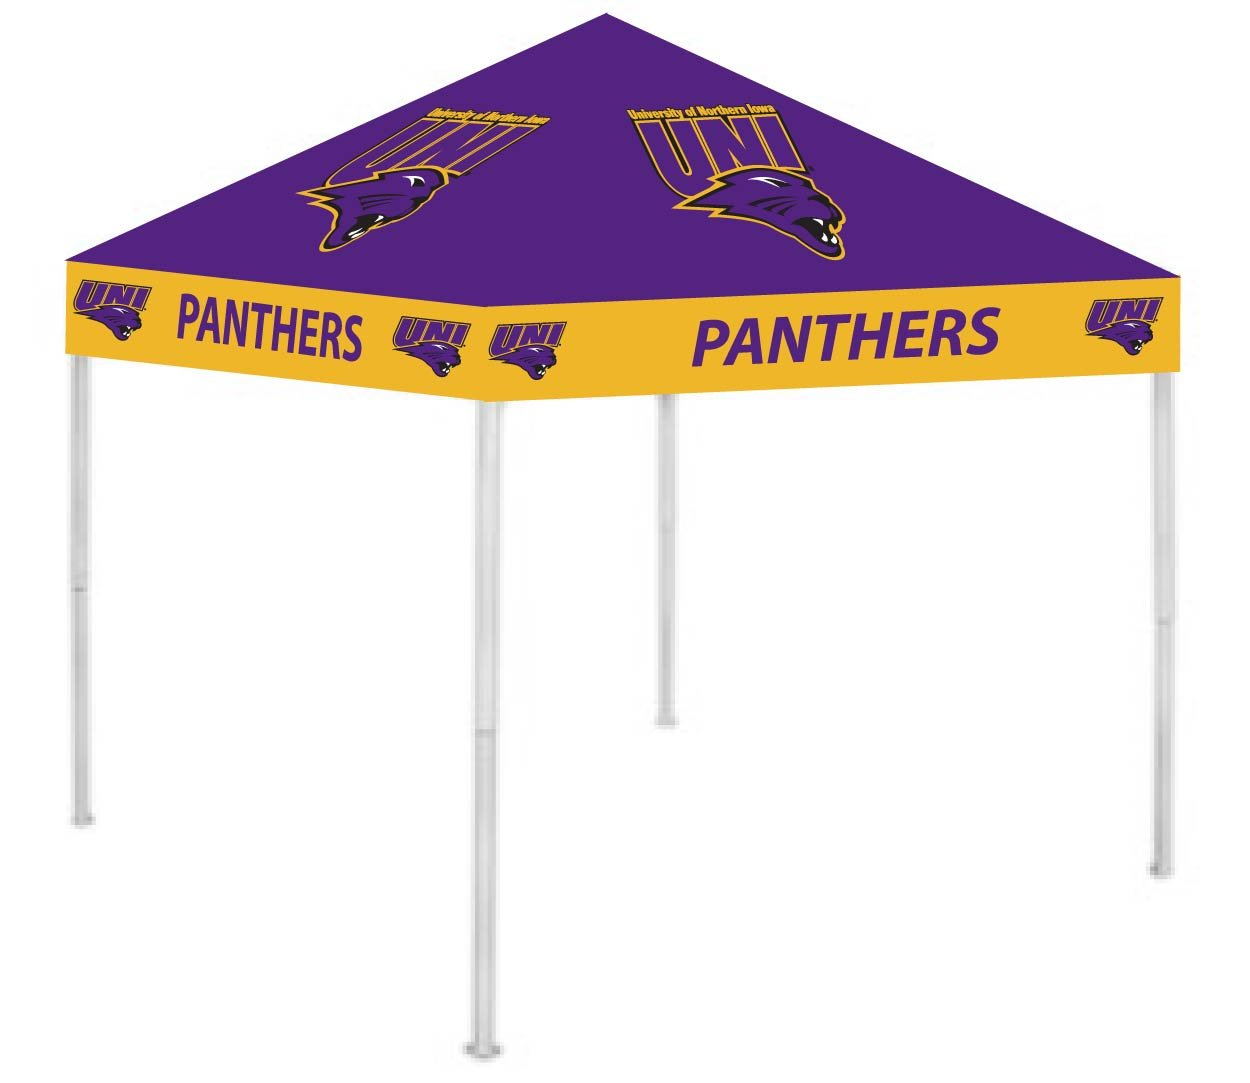 Rivalry RV315-5000 Northern Iowa Canopy B004NWGCUS 9 x 9|Northern Iowa Panthers Northern Iowa Panthers 9 x 9